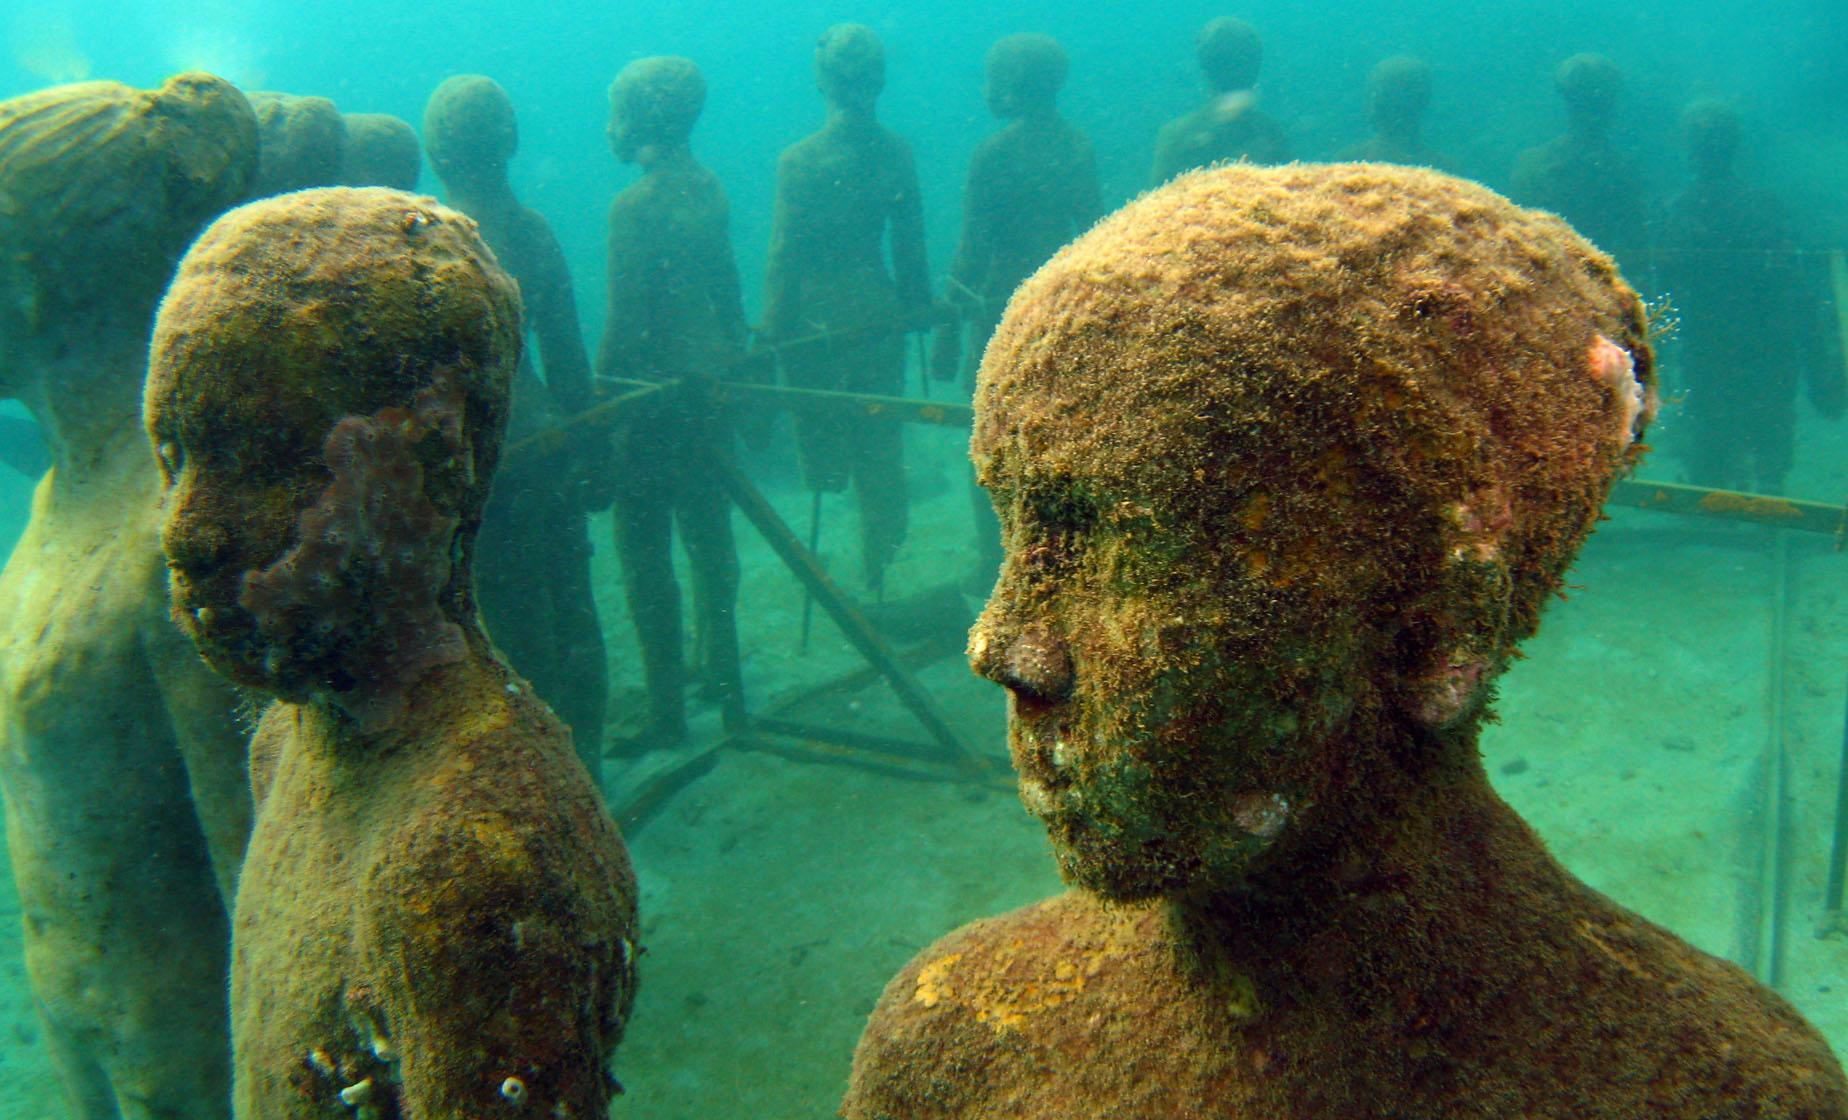 Snorkeling Grenada's Underwater Sculpture Park and Reefs Tour in Grenada